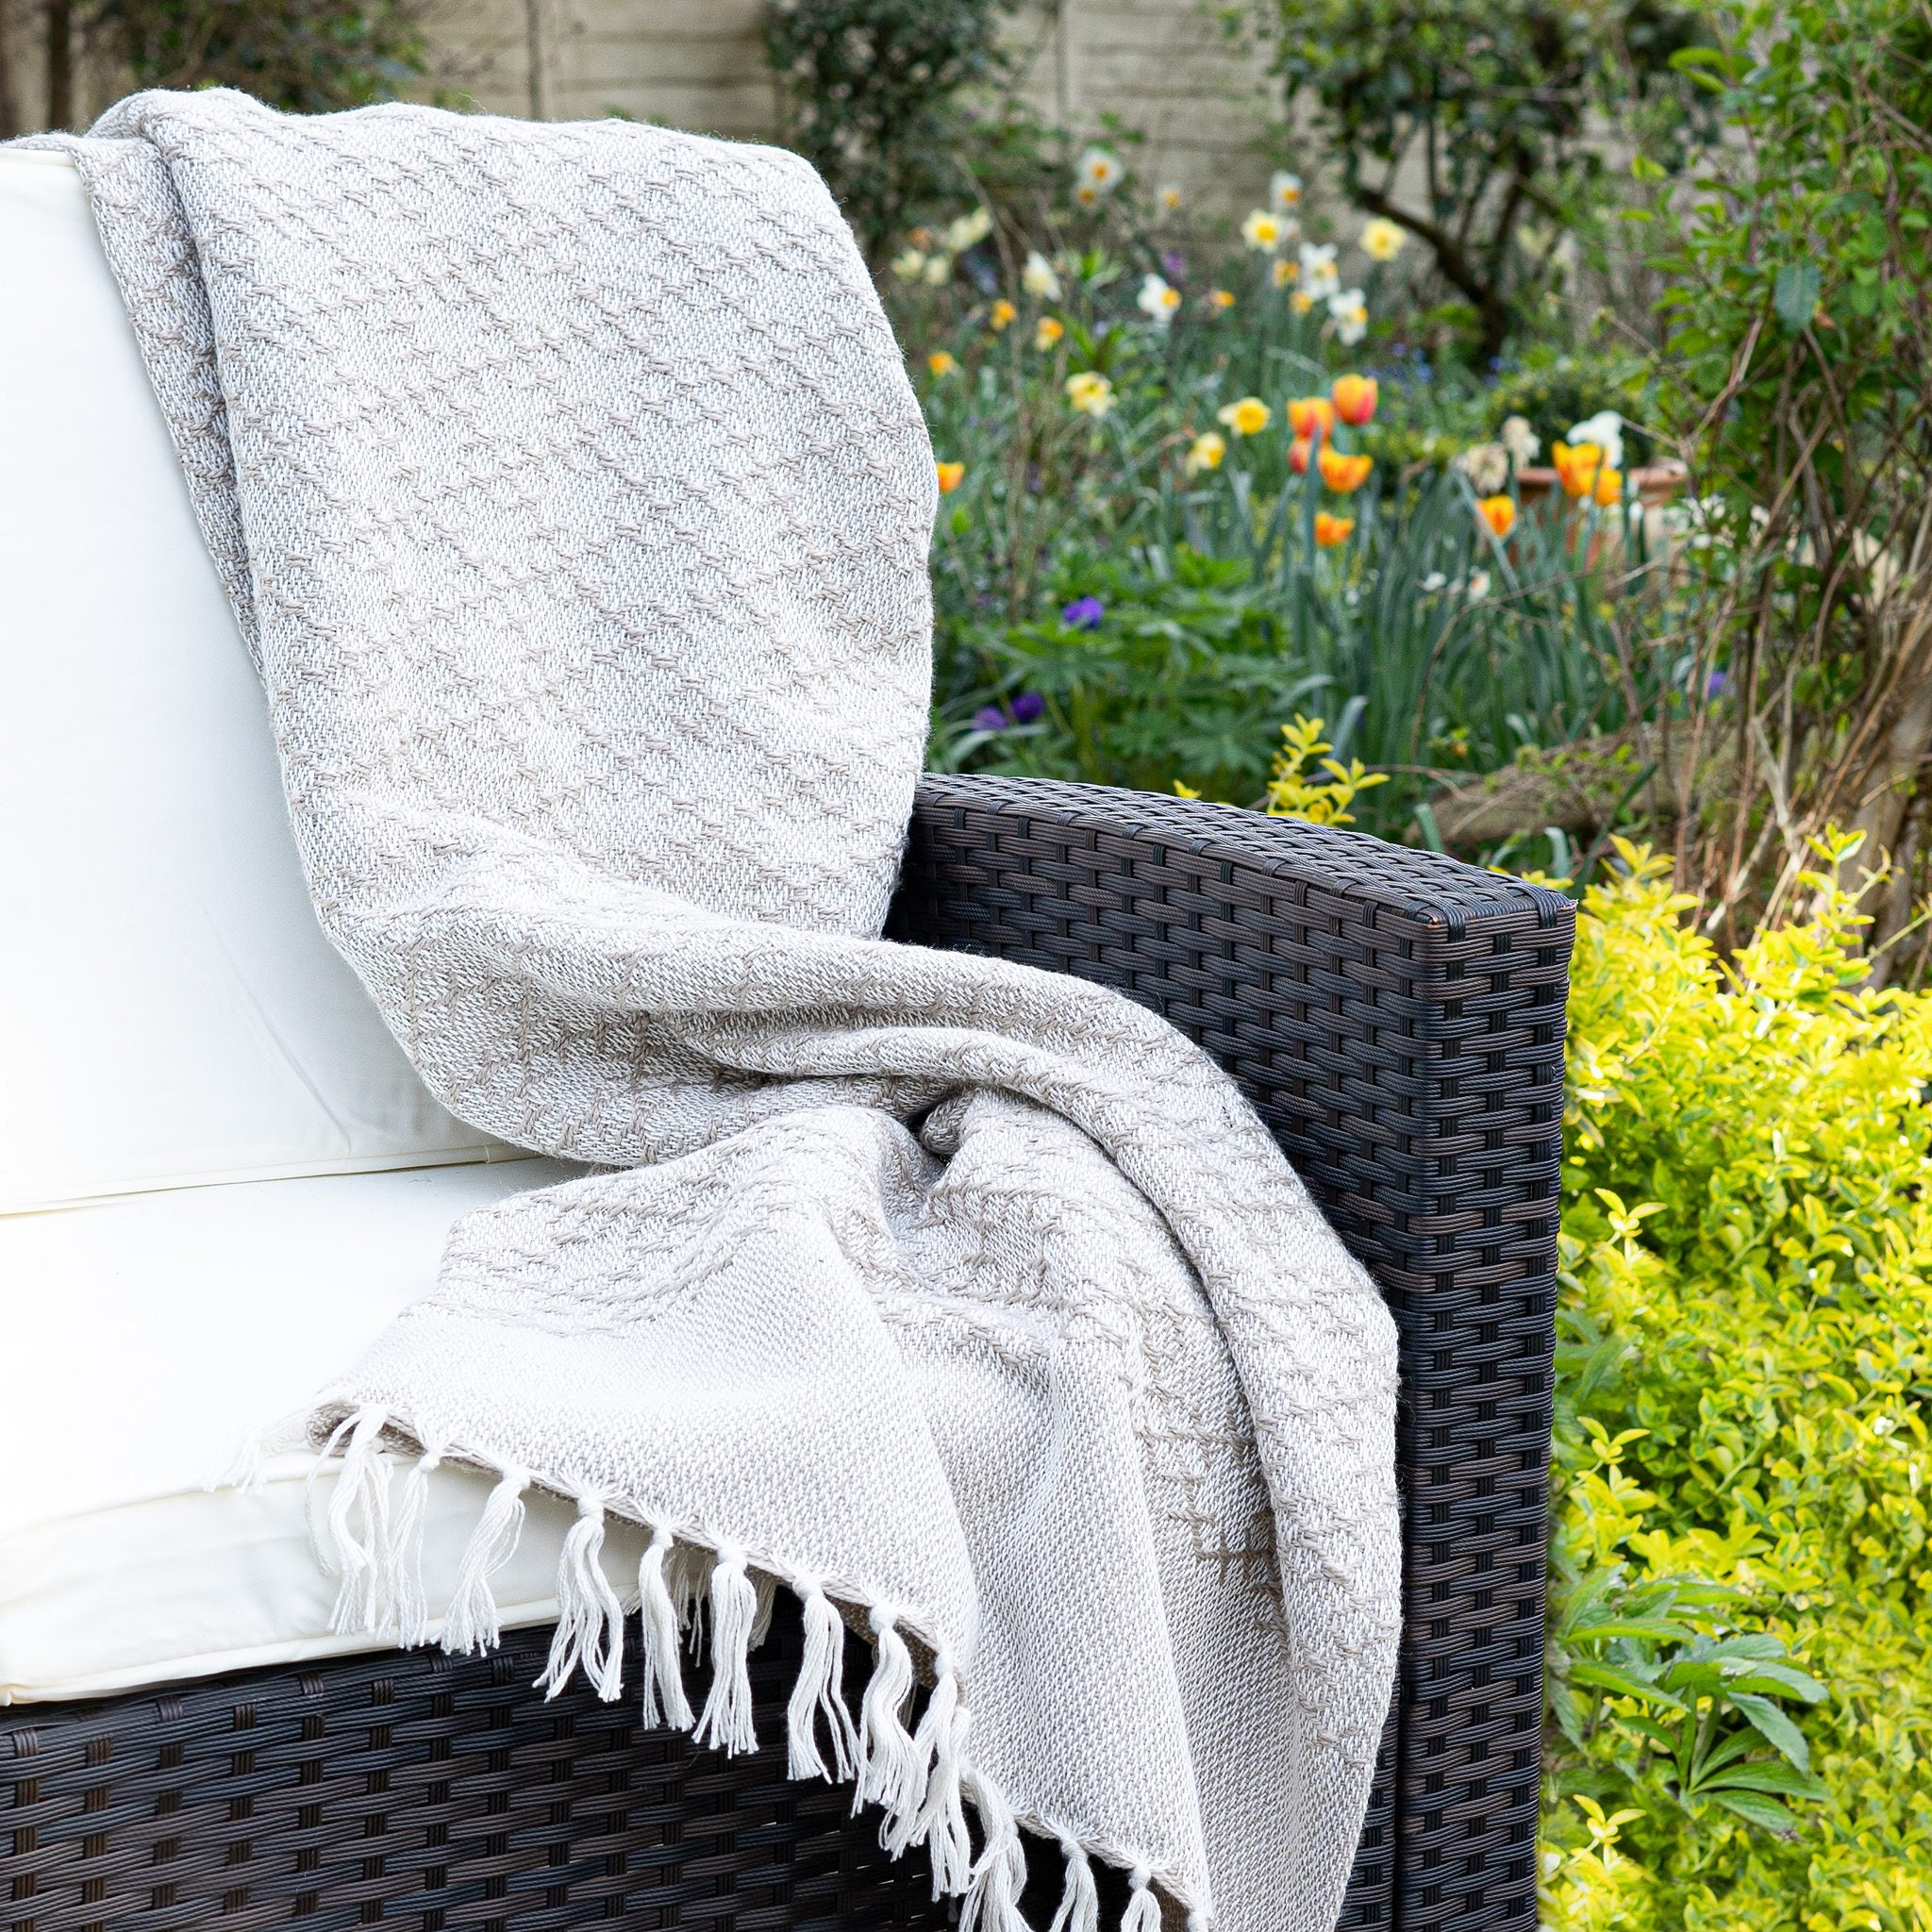 An image of Modern Trellis Eco-Friendly Woven Indoor / Outdoor Rug 130x180cm Throw / Natural